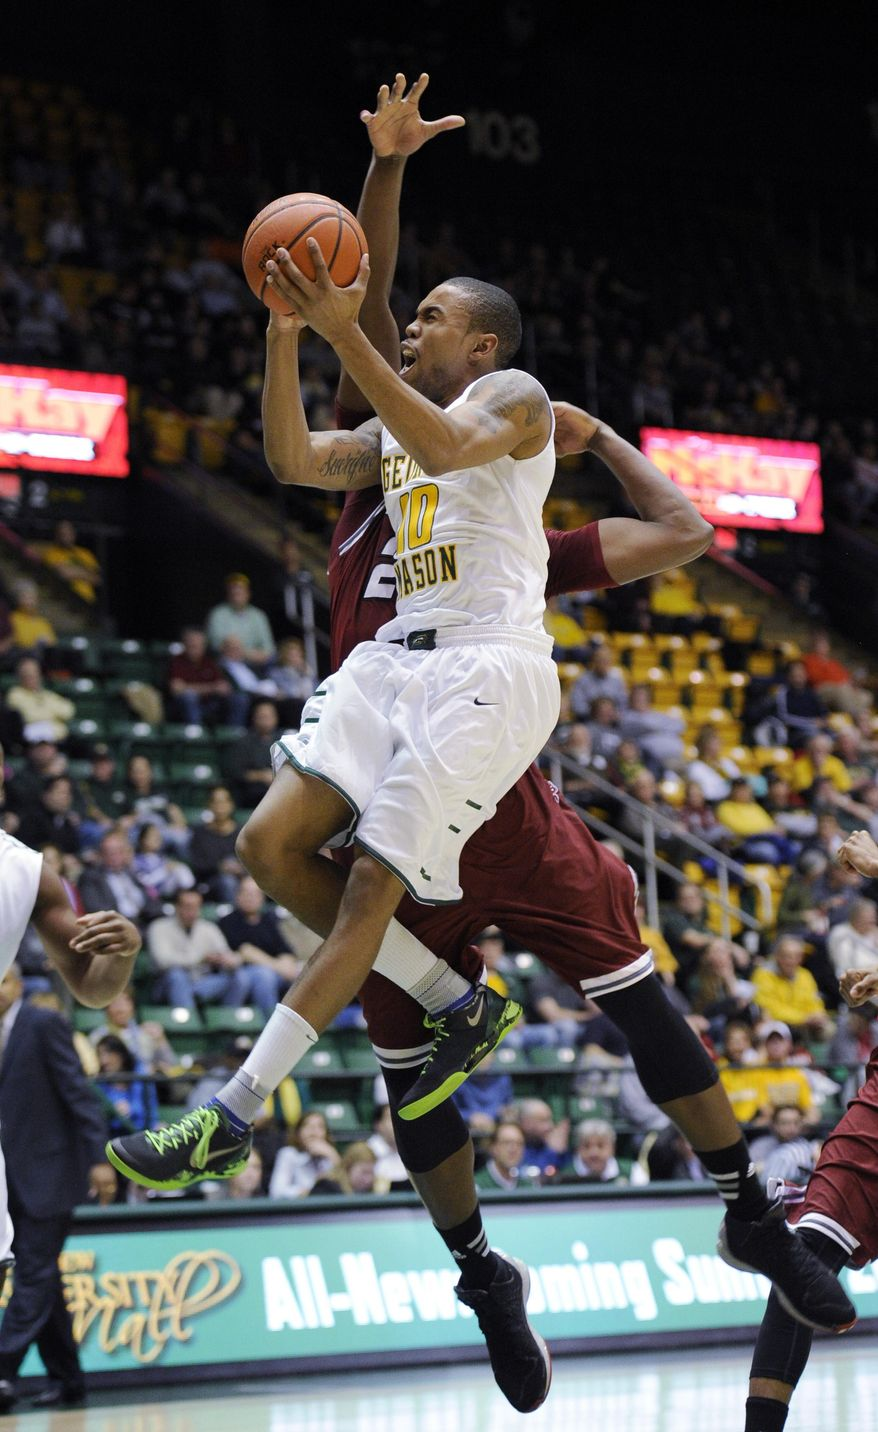 George Mason guard Sherrod Wright (10) gets fouled by Massachusetts forward/center Cady Lalanne, back, as he goes to the basket during the second half of an NCAA college basketball game, Wednesday, Jan. 15, 2014, in Fairfax, Va. Massachusetts won 88-87. (AP Photo/Nick Wass)